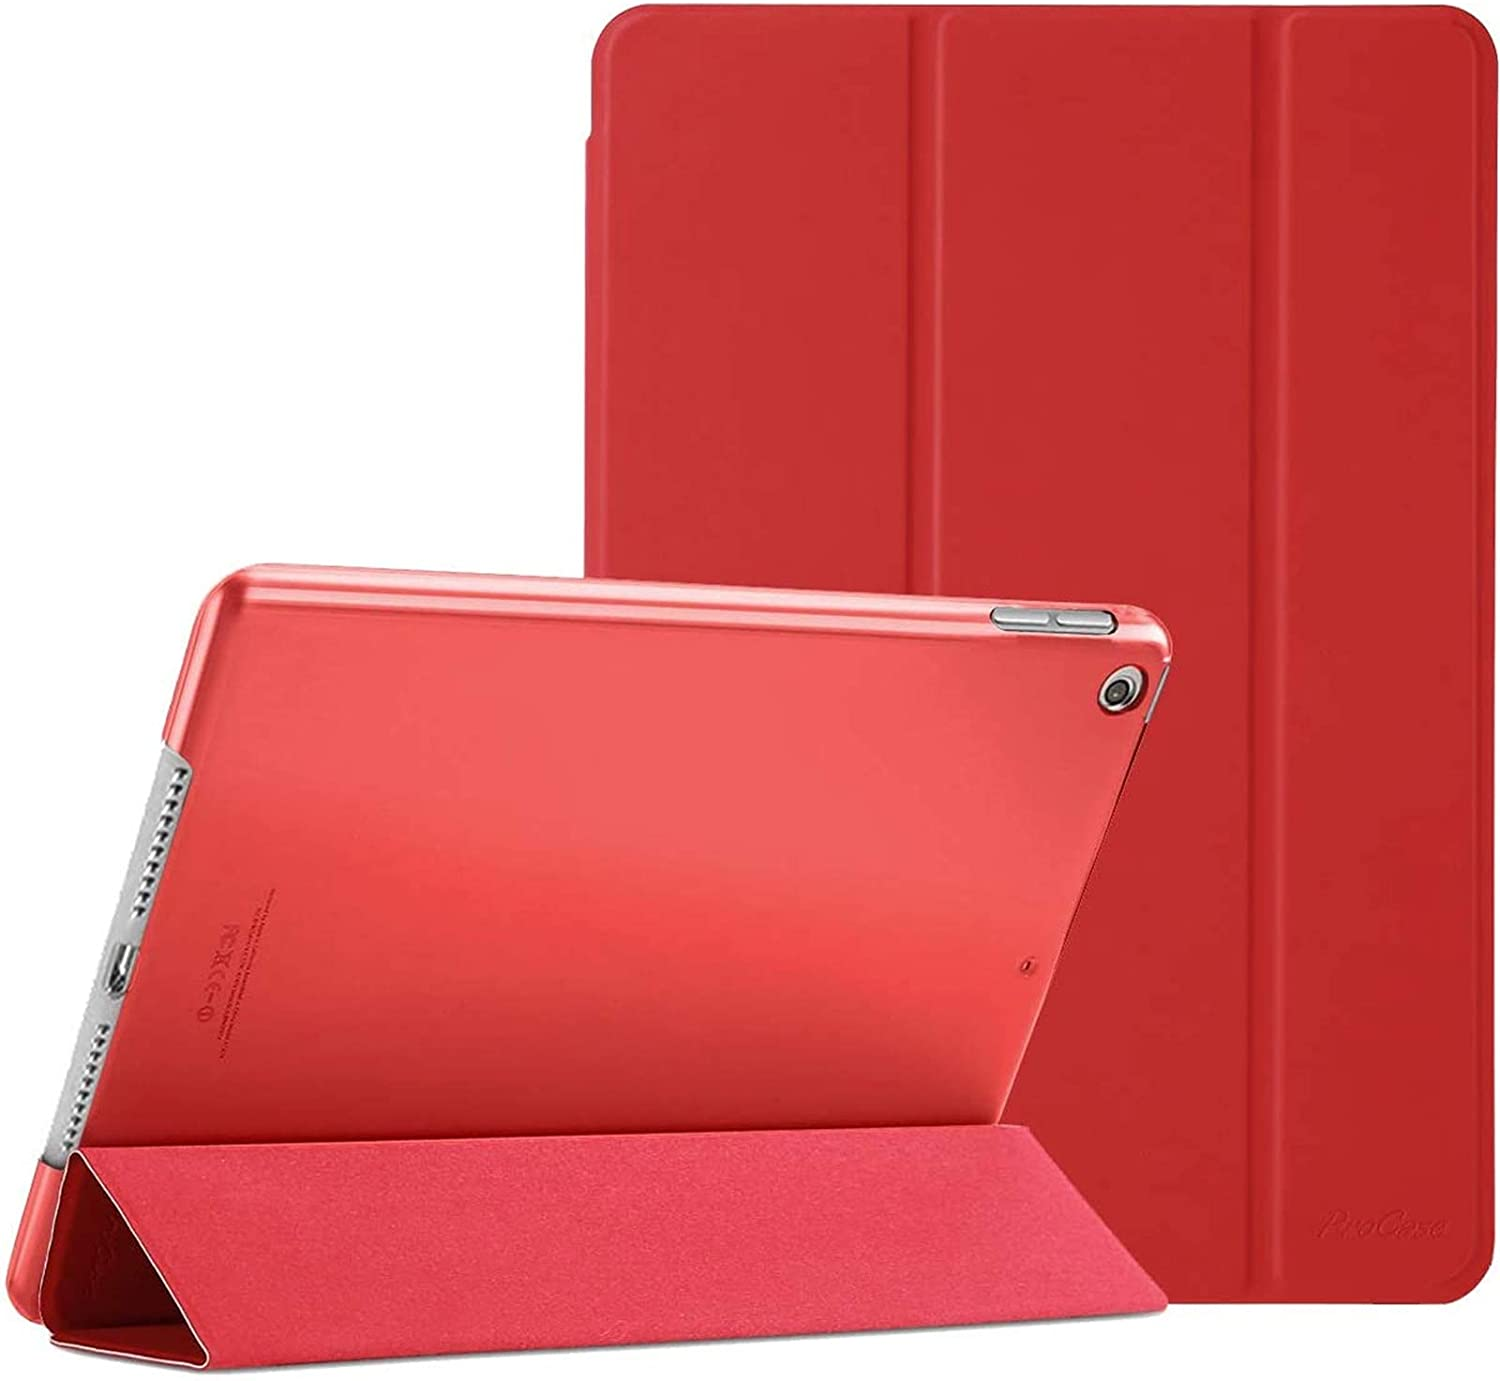 "ProCase iPad 10.2 Case 2020 iPad 8th Generation Case / 2019 iPad 7th Generation Case, Slim Stand Hard Back Shell Protective Smart Cover for 10.2"" iPad 8 / iPad 7 -Red"